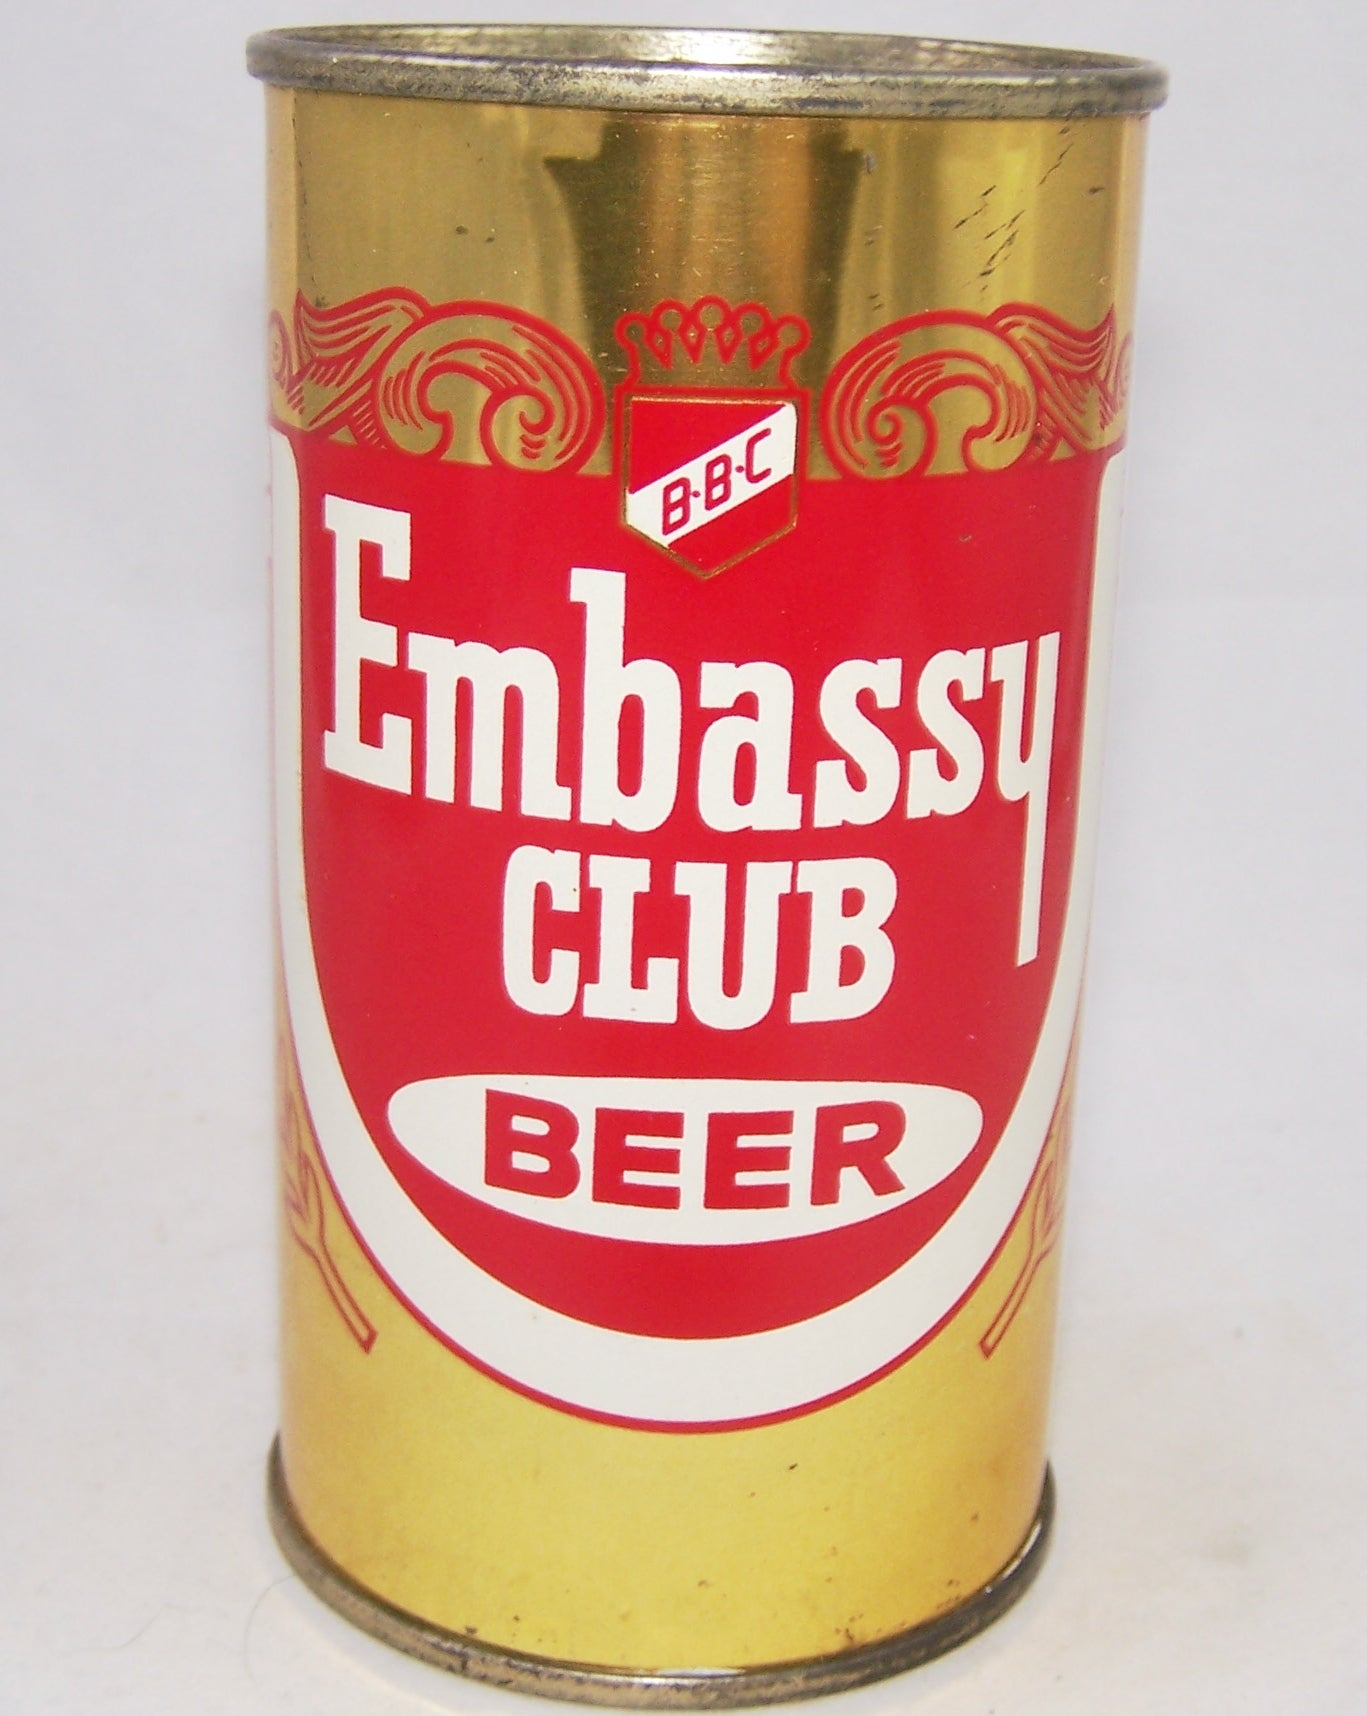 Embassy Club Beer, USBC 59-33, Grade 1 Sold on 02/15/18